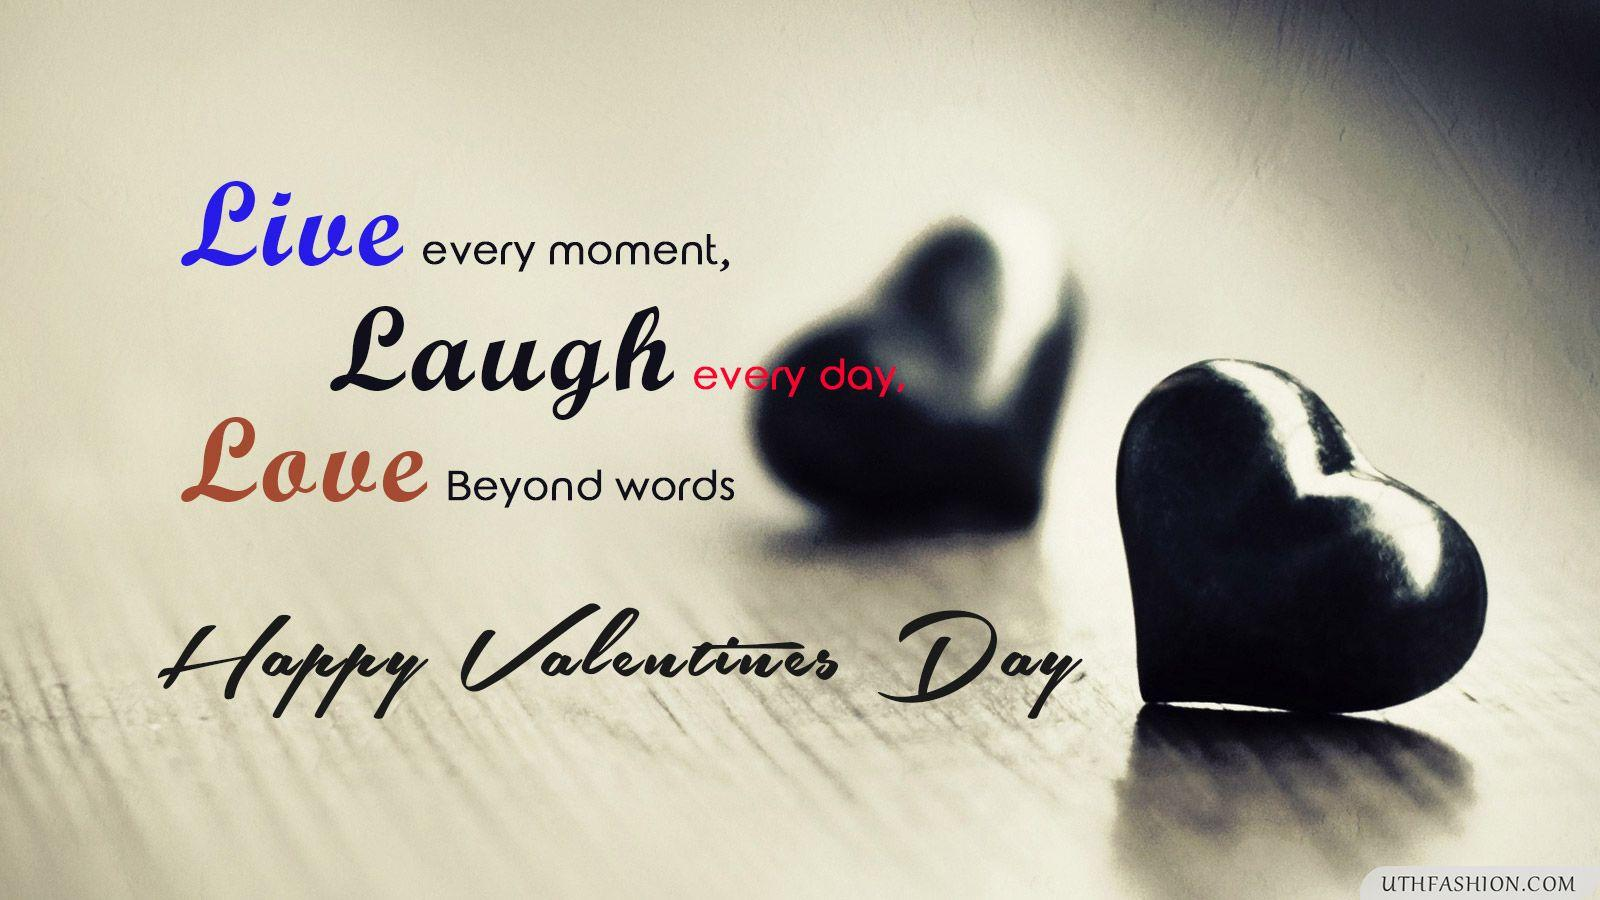 Hd Love Quotes Wallpapers For Mobile Wallpaper Cave